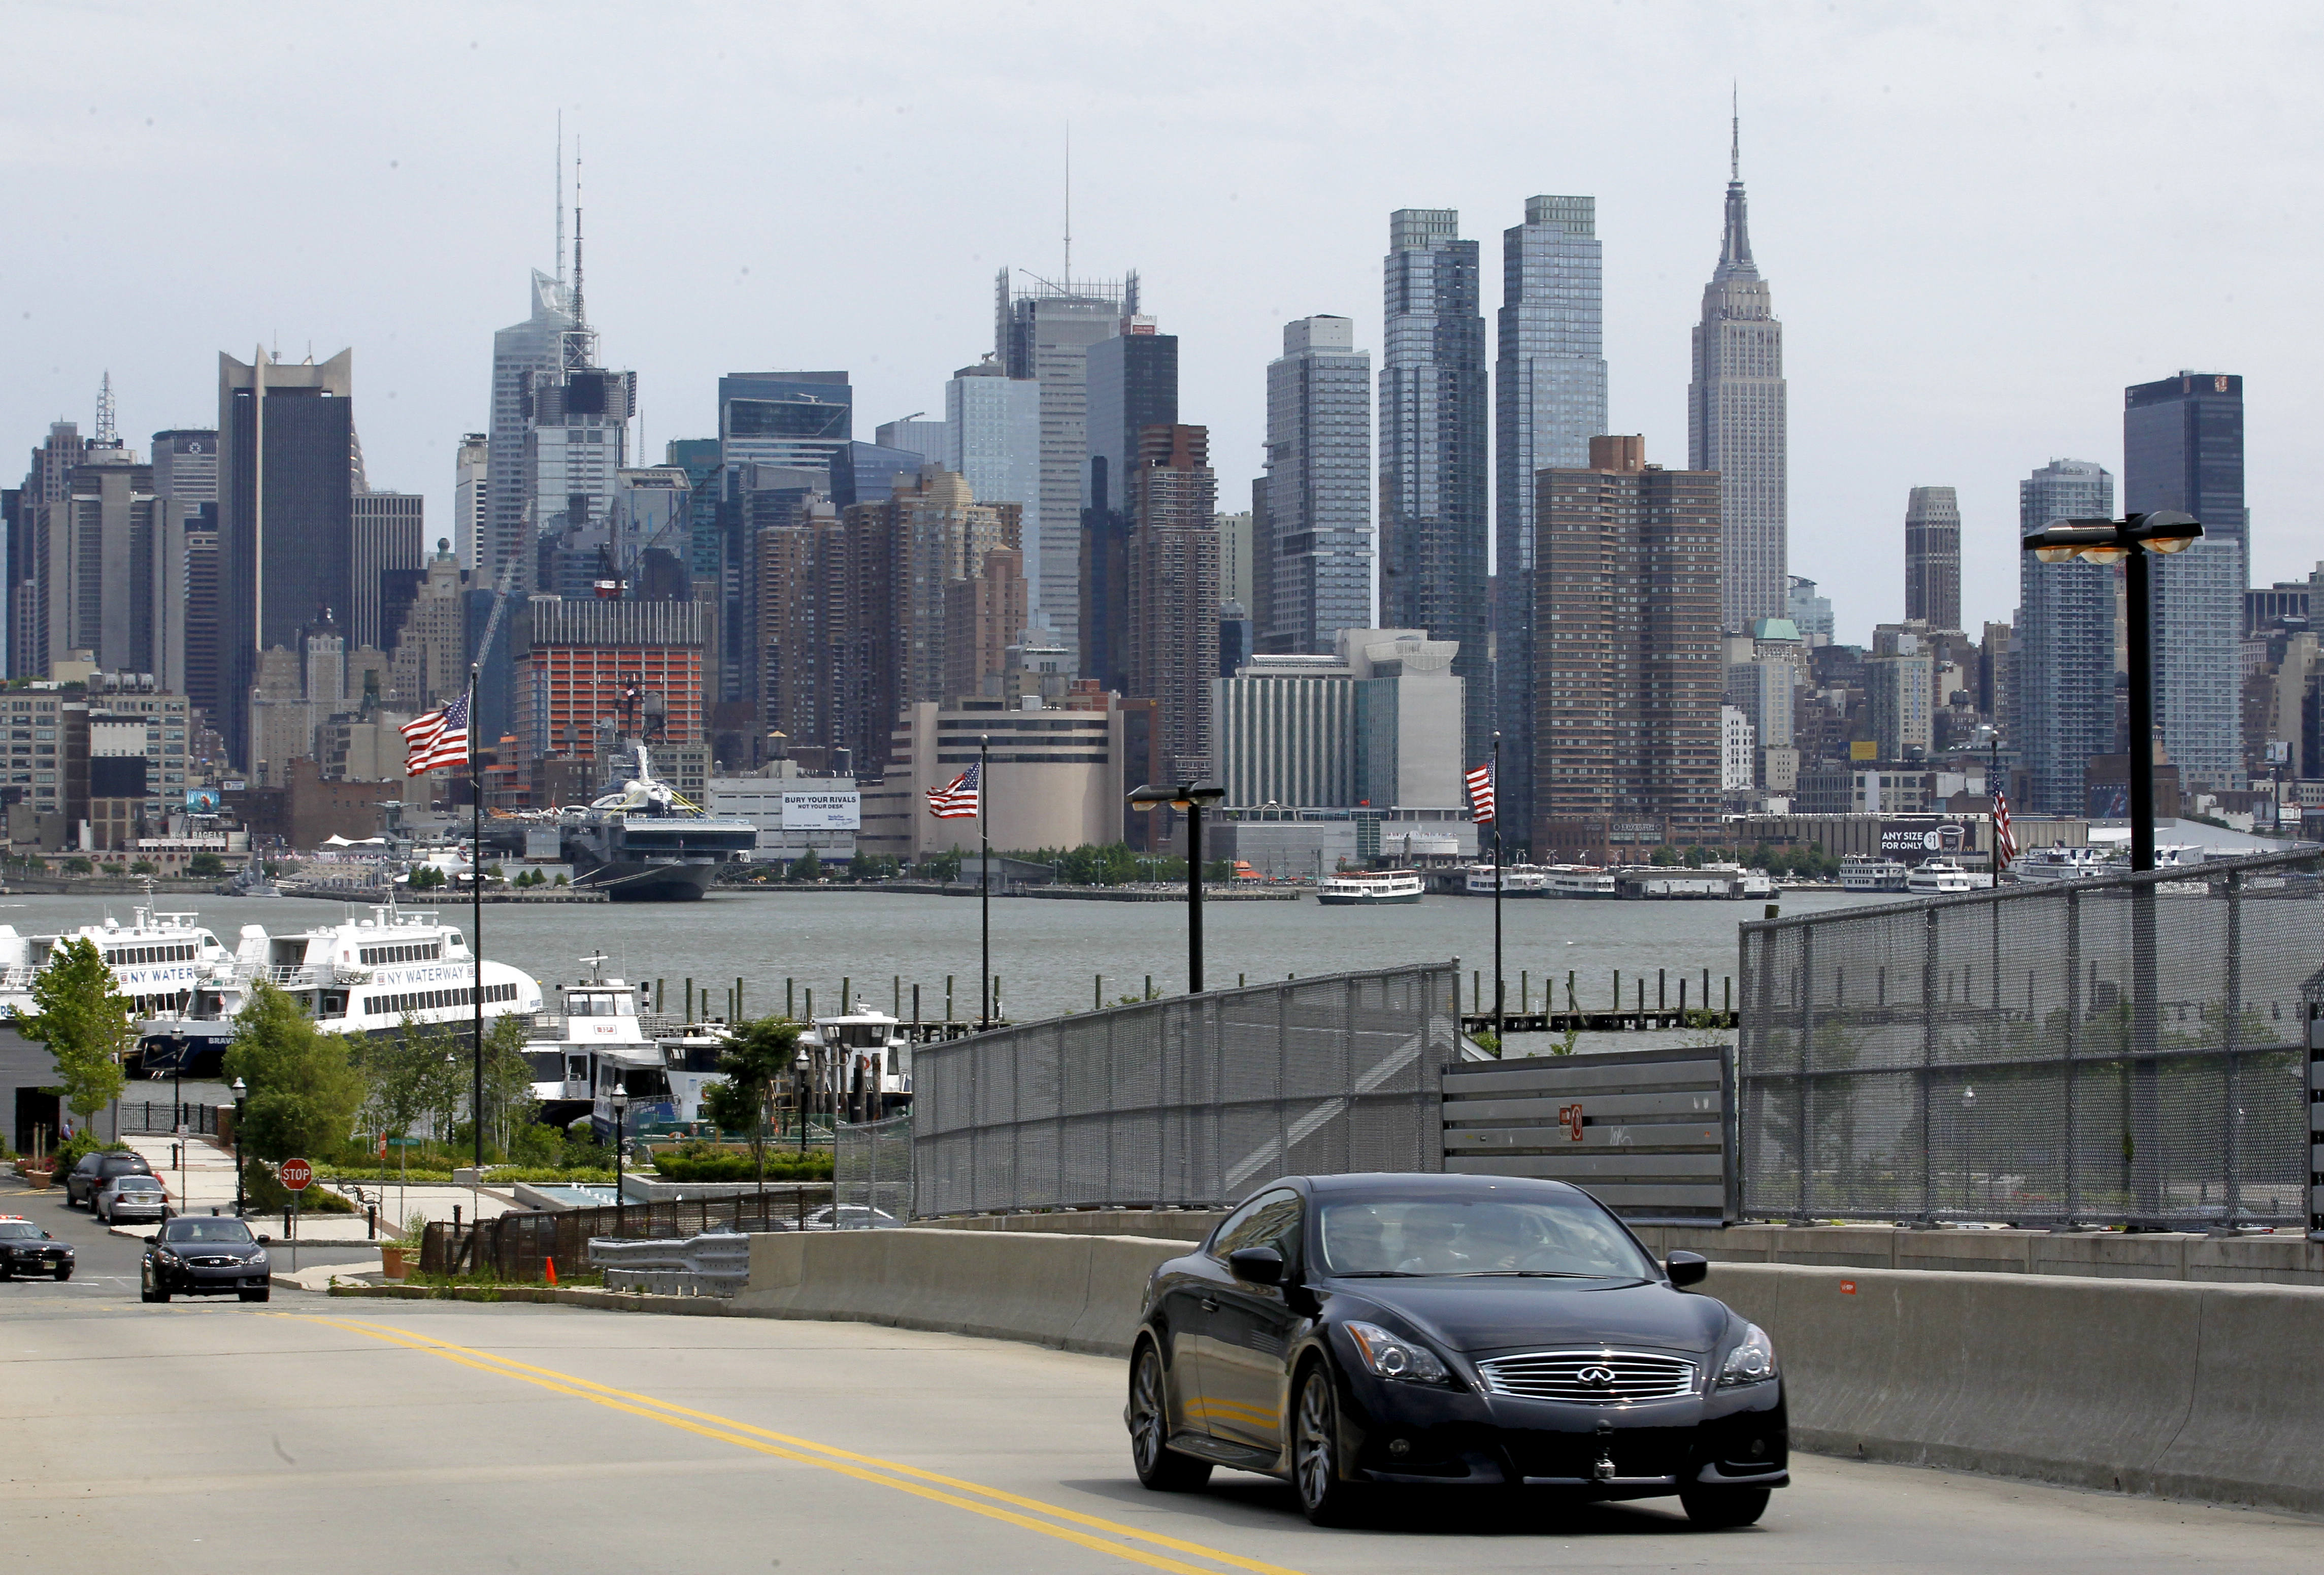 New York City skyline. (AP Photo/Julio Cortez)